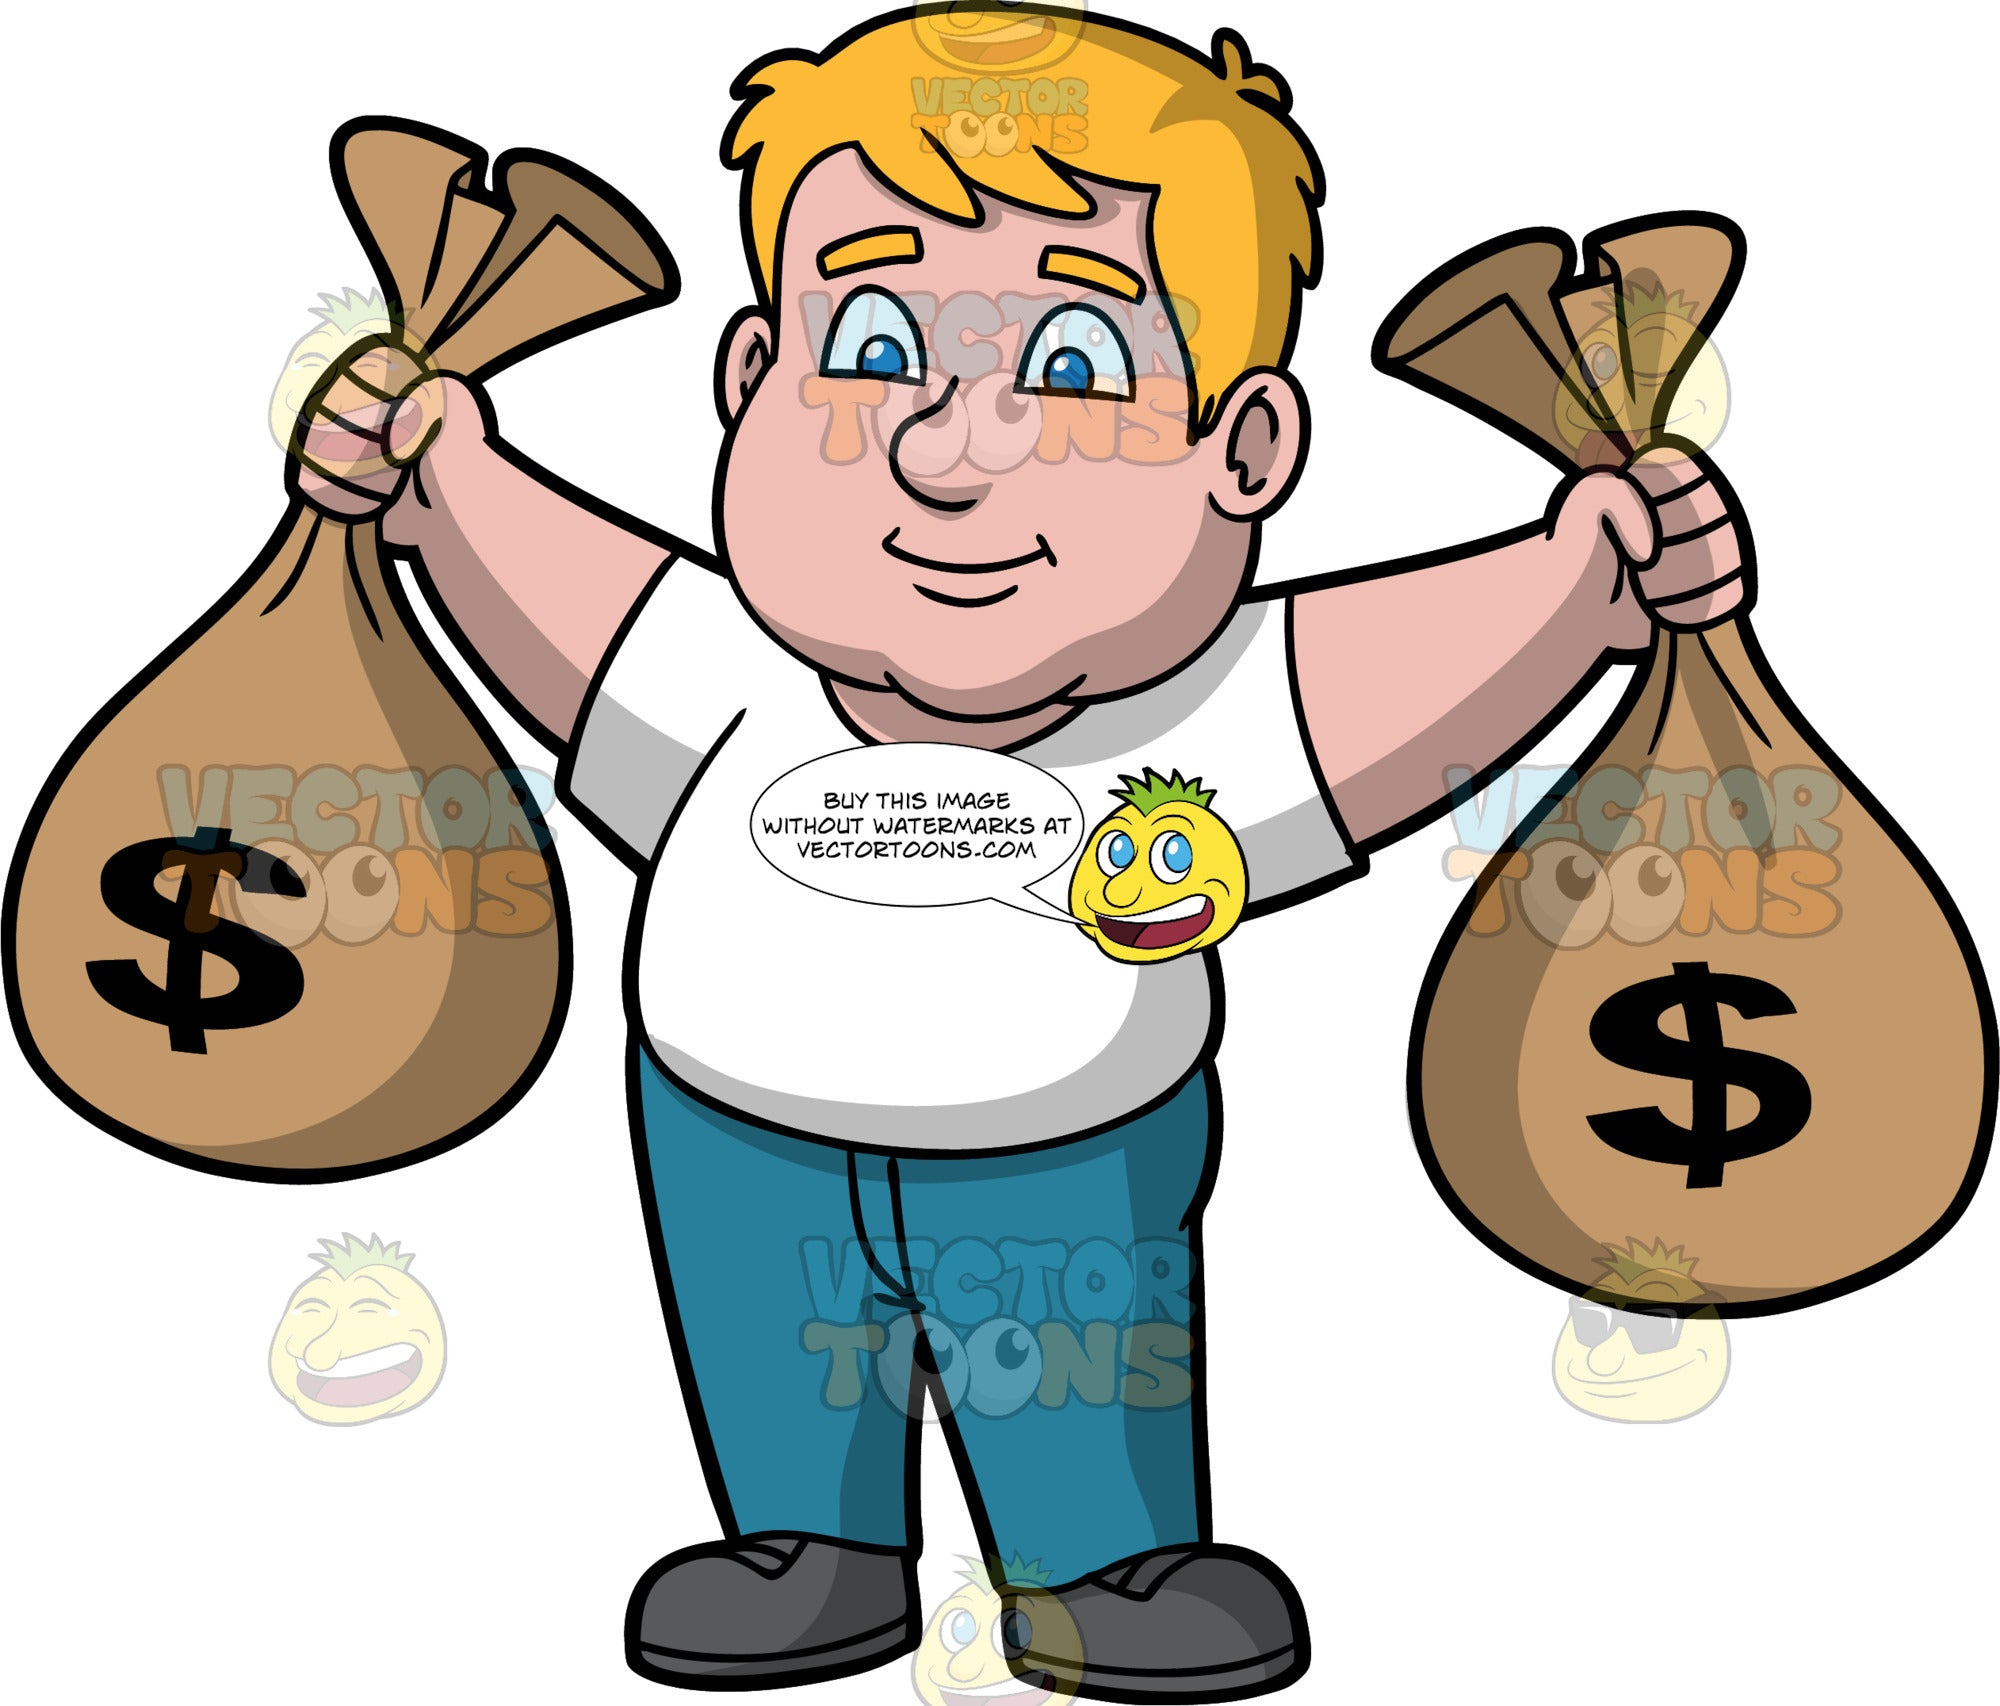 Sam Holding Bags Of Cash. A chubby man wearing blue jeans, a white t-shirt, and dark gray shoes, standing and holding a big bag of money in each hand